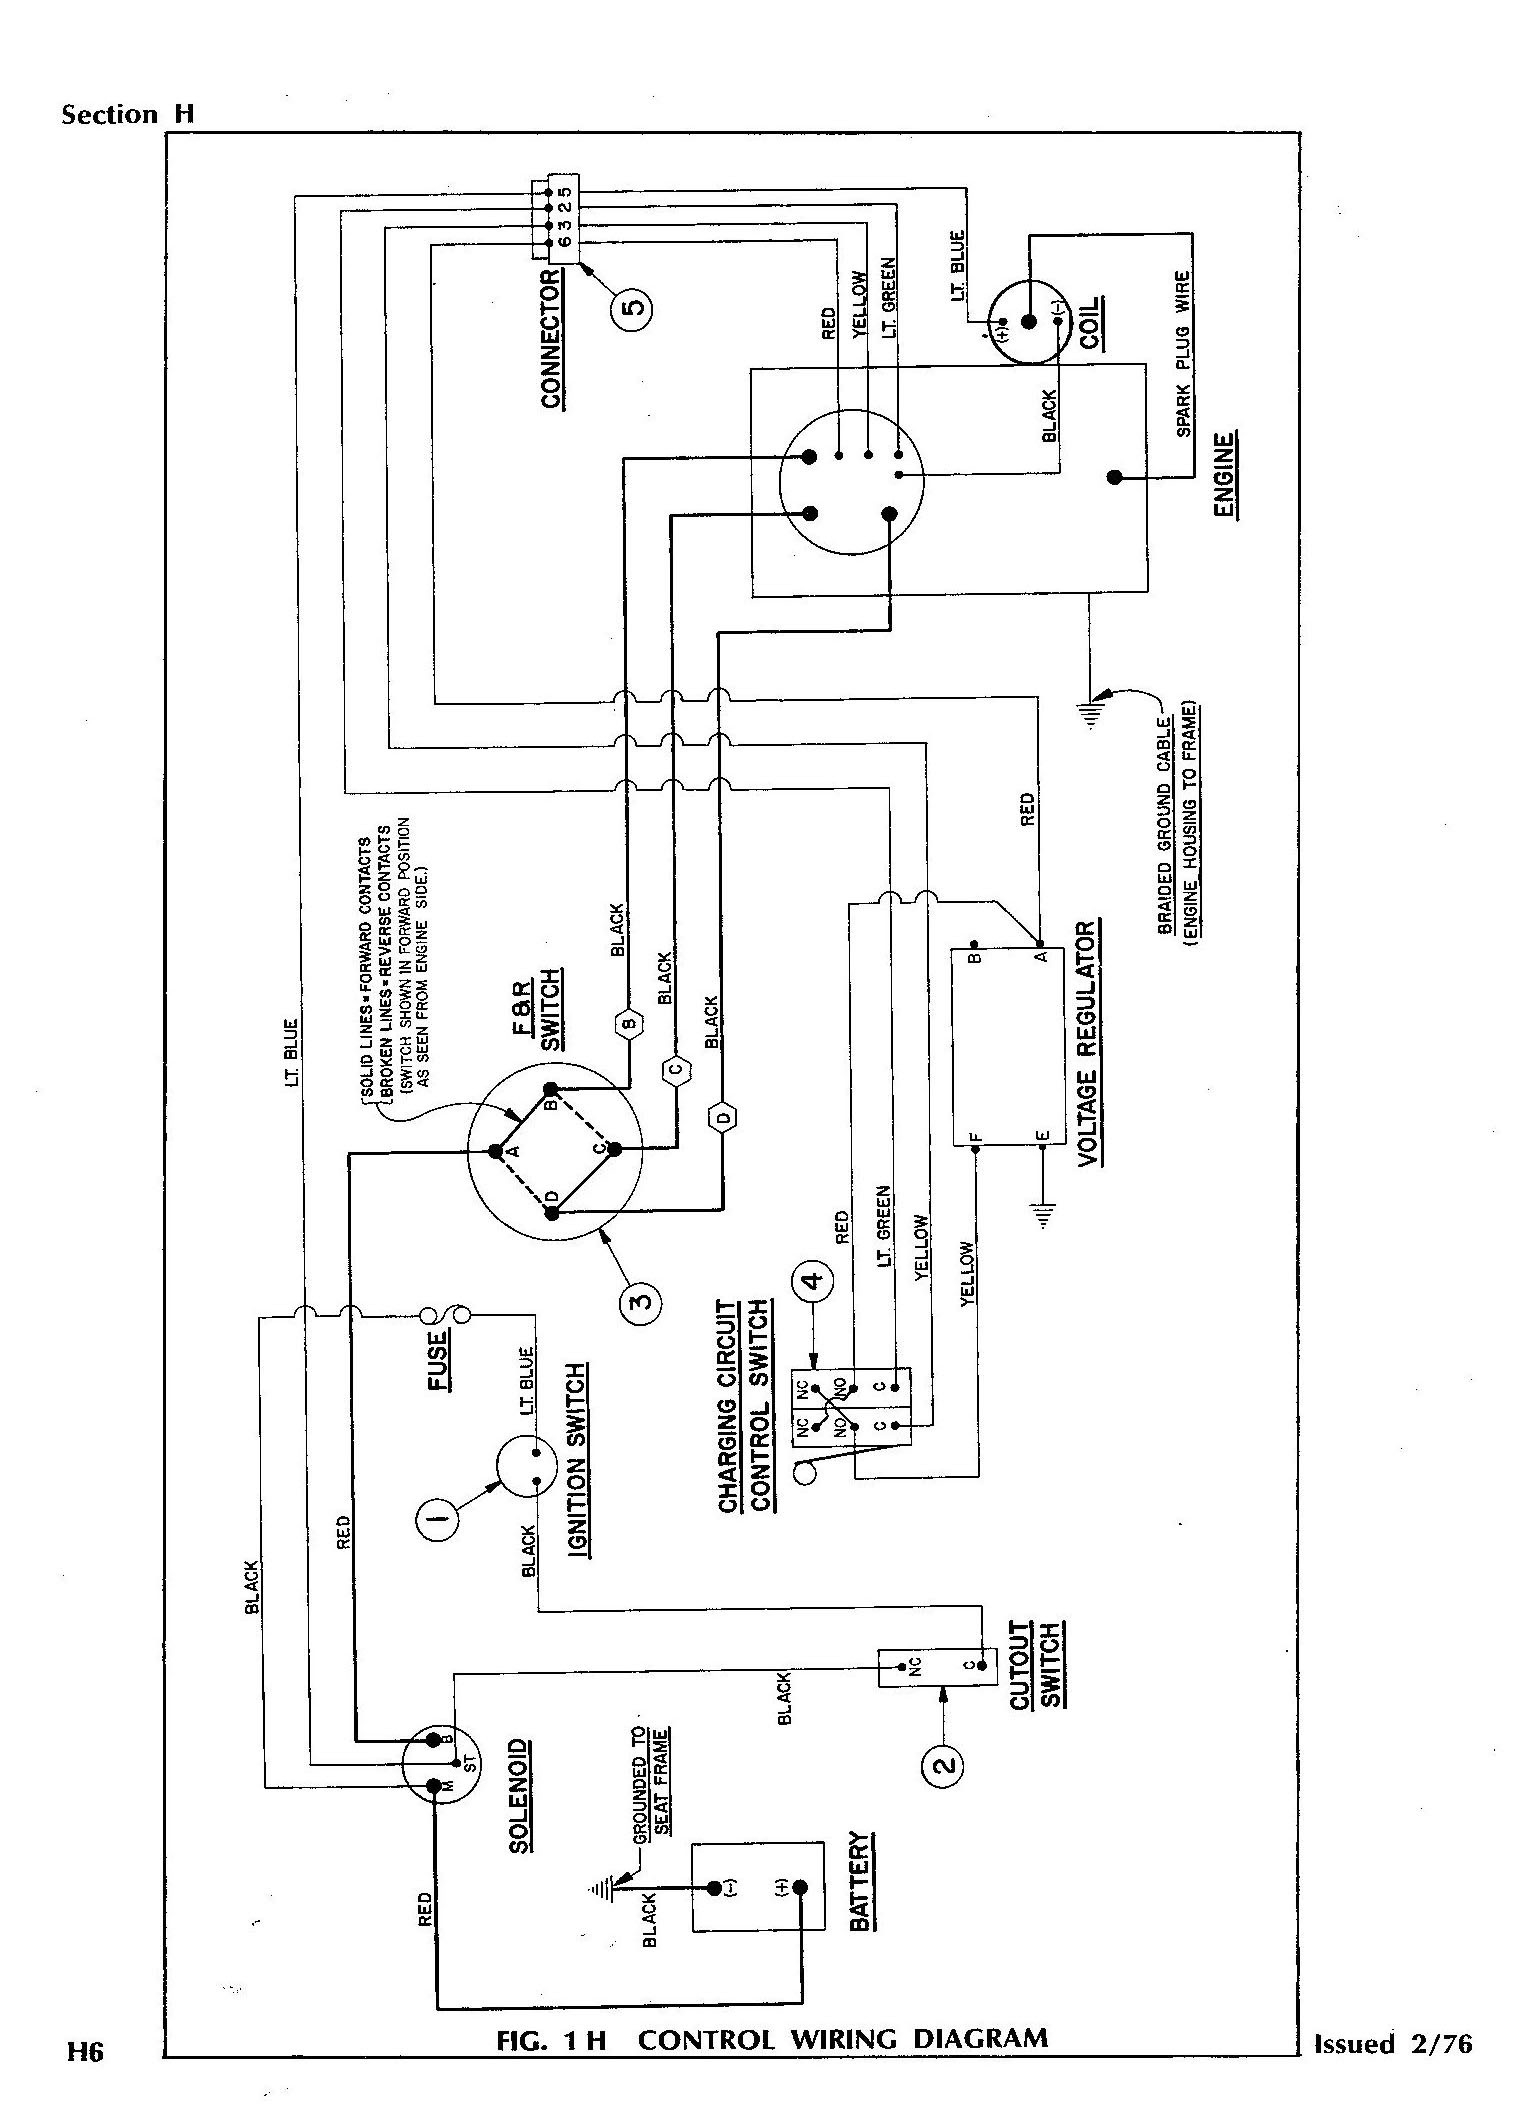 99 ezgo gas wiring diagram 2006 ezgo wiring diagrams lan1 repeat4 klictravel nl  2006 ezgo wiring diagrams lan1